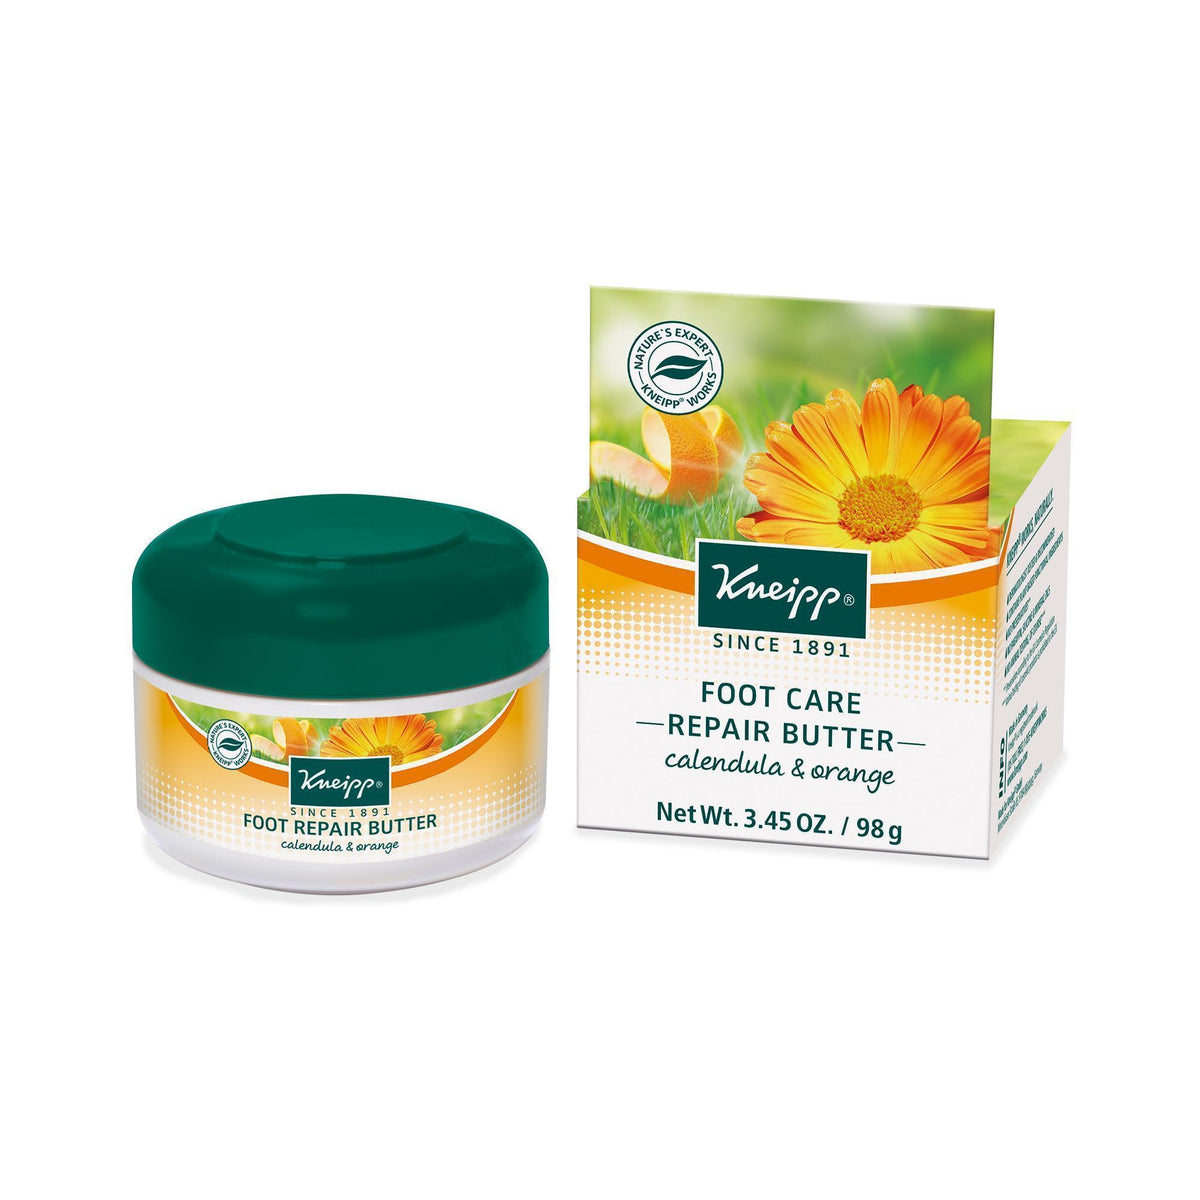 Kneipp Foot Repair Butter 3.45 Oz.